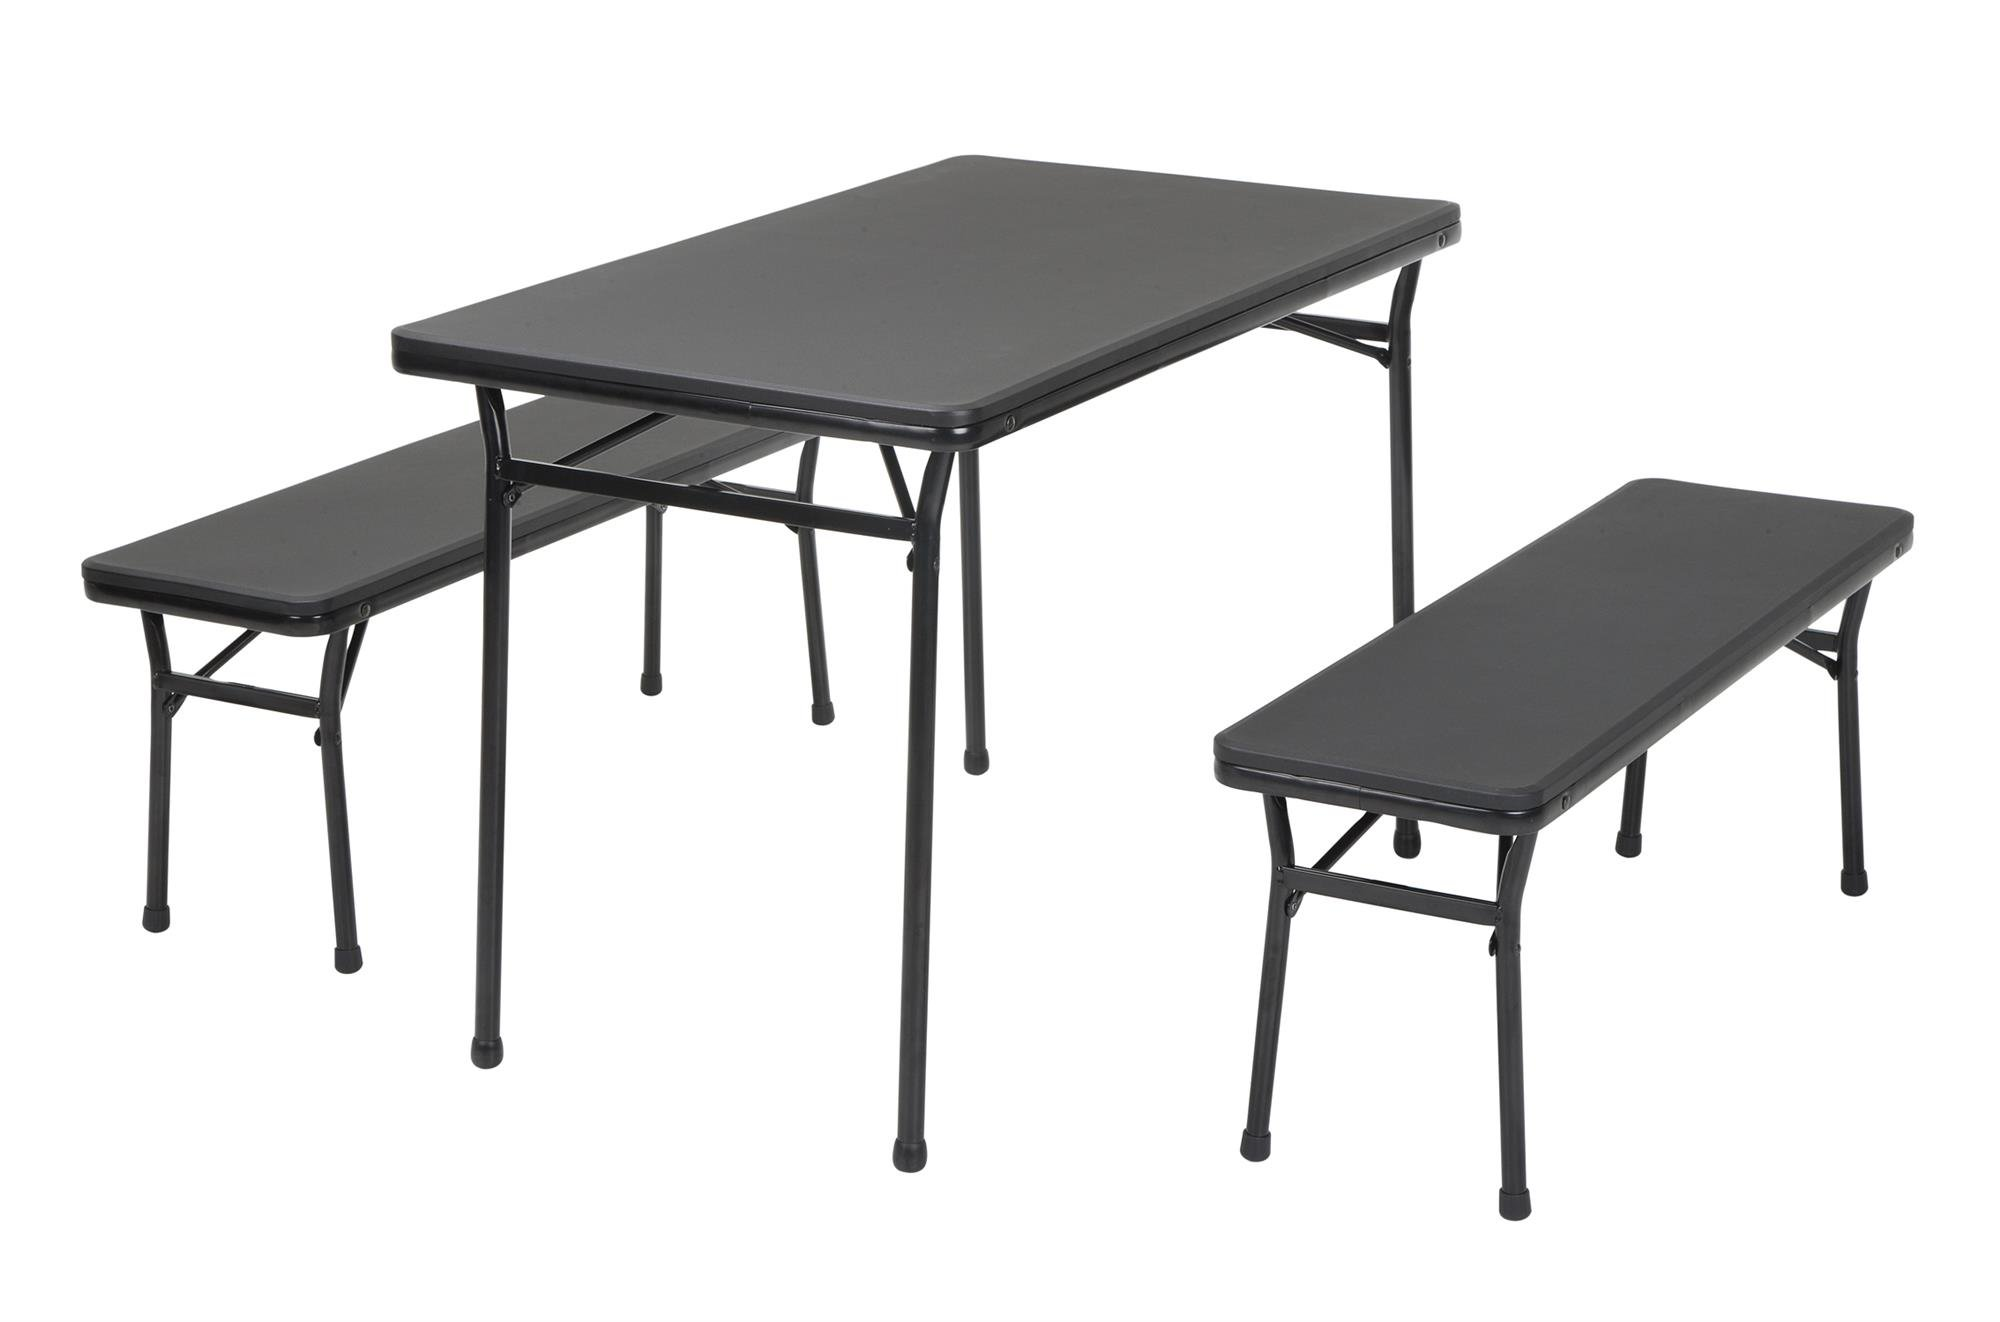 Cosco Products COSCO 3 Piece Indoor Outdoor Table and 2 Bench Tailgate Set, Black